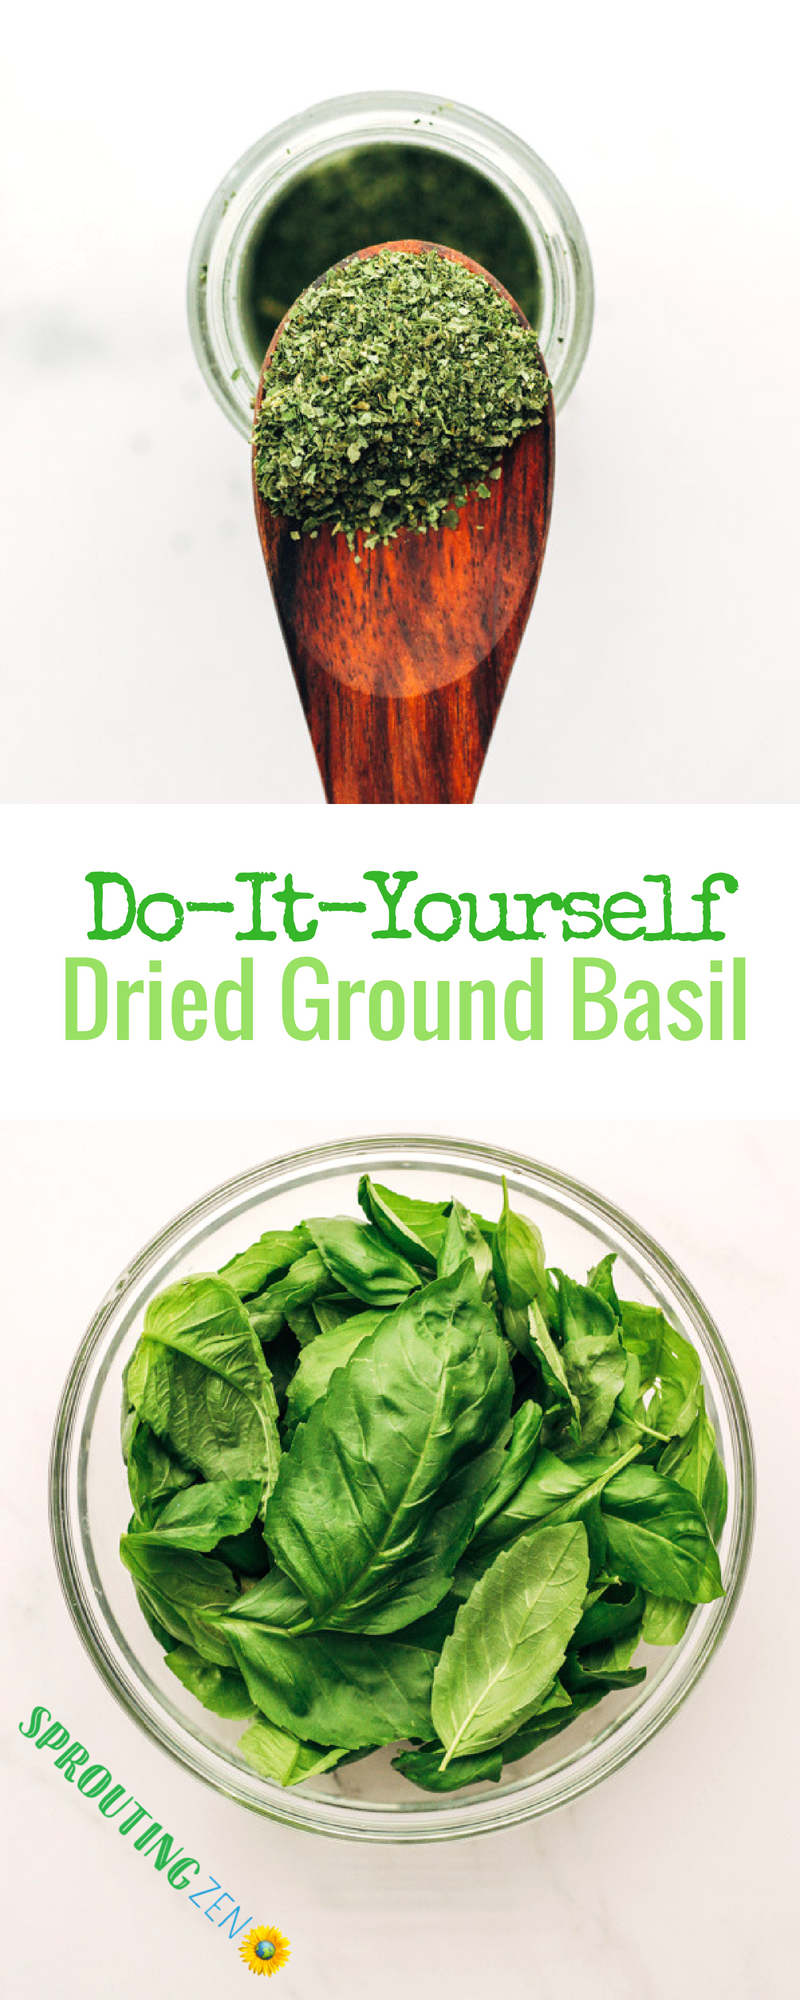 Learn how to make your own dried basil powder using basil from your garden! #homegrown #gardening #vegan #plantbased